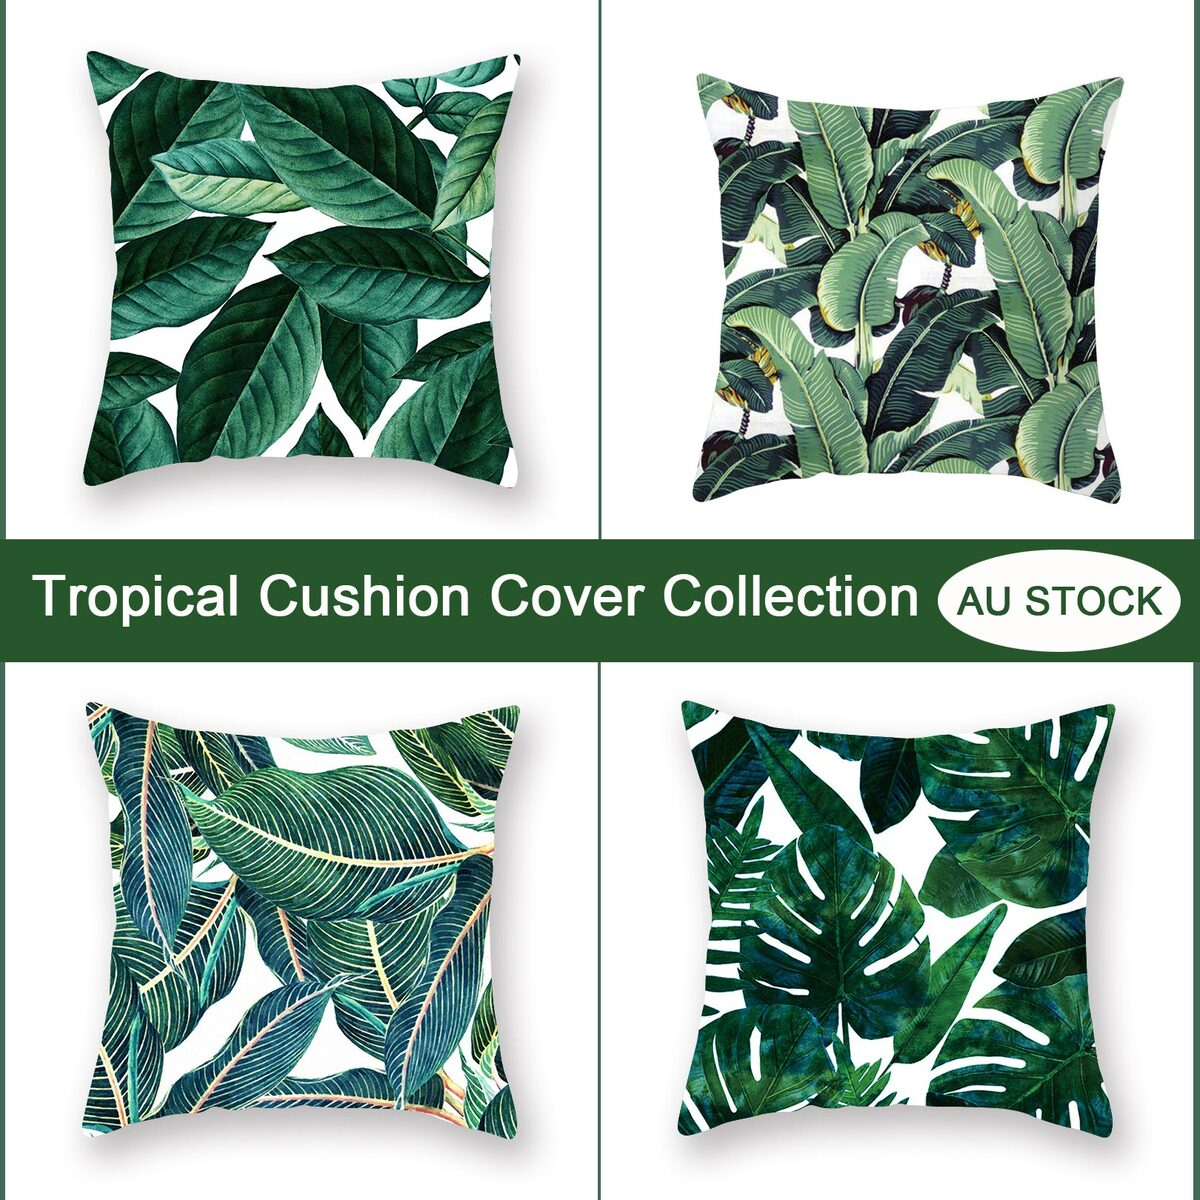 20x20cm Tropical Plant Palm Leaves Cushion Cover Collection